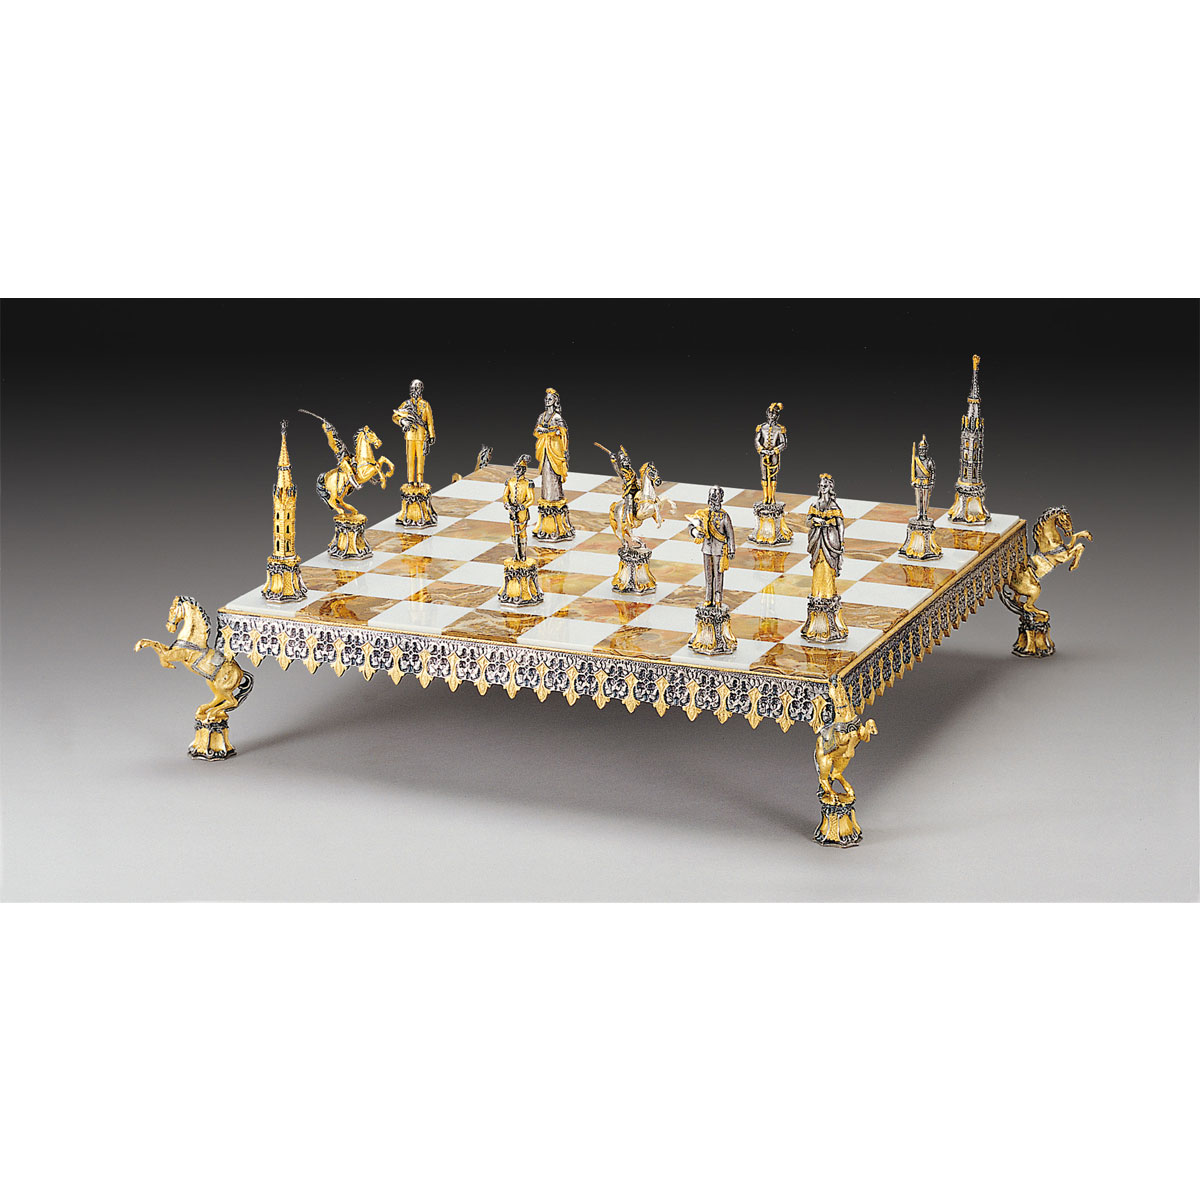 Habsburg - Franz Joseph I Emperor of Austria Themed Chess Set | Gold & Silver